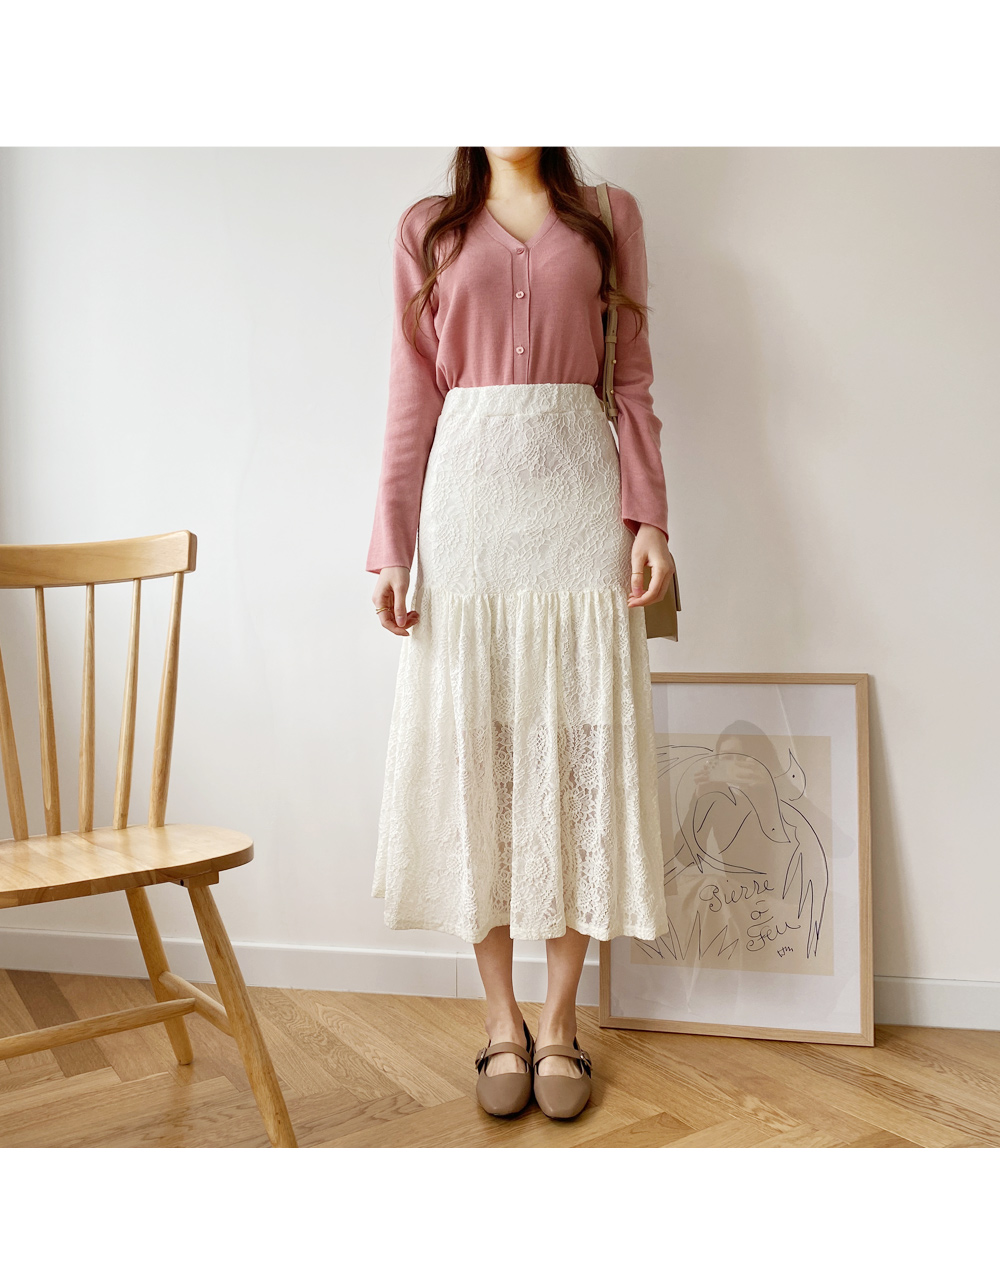 Flarelong skirt with lace